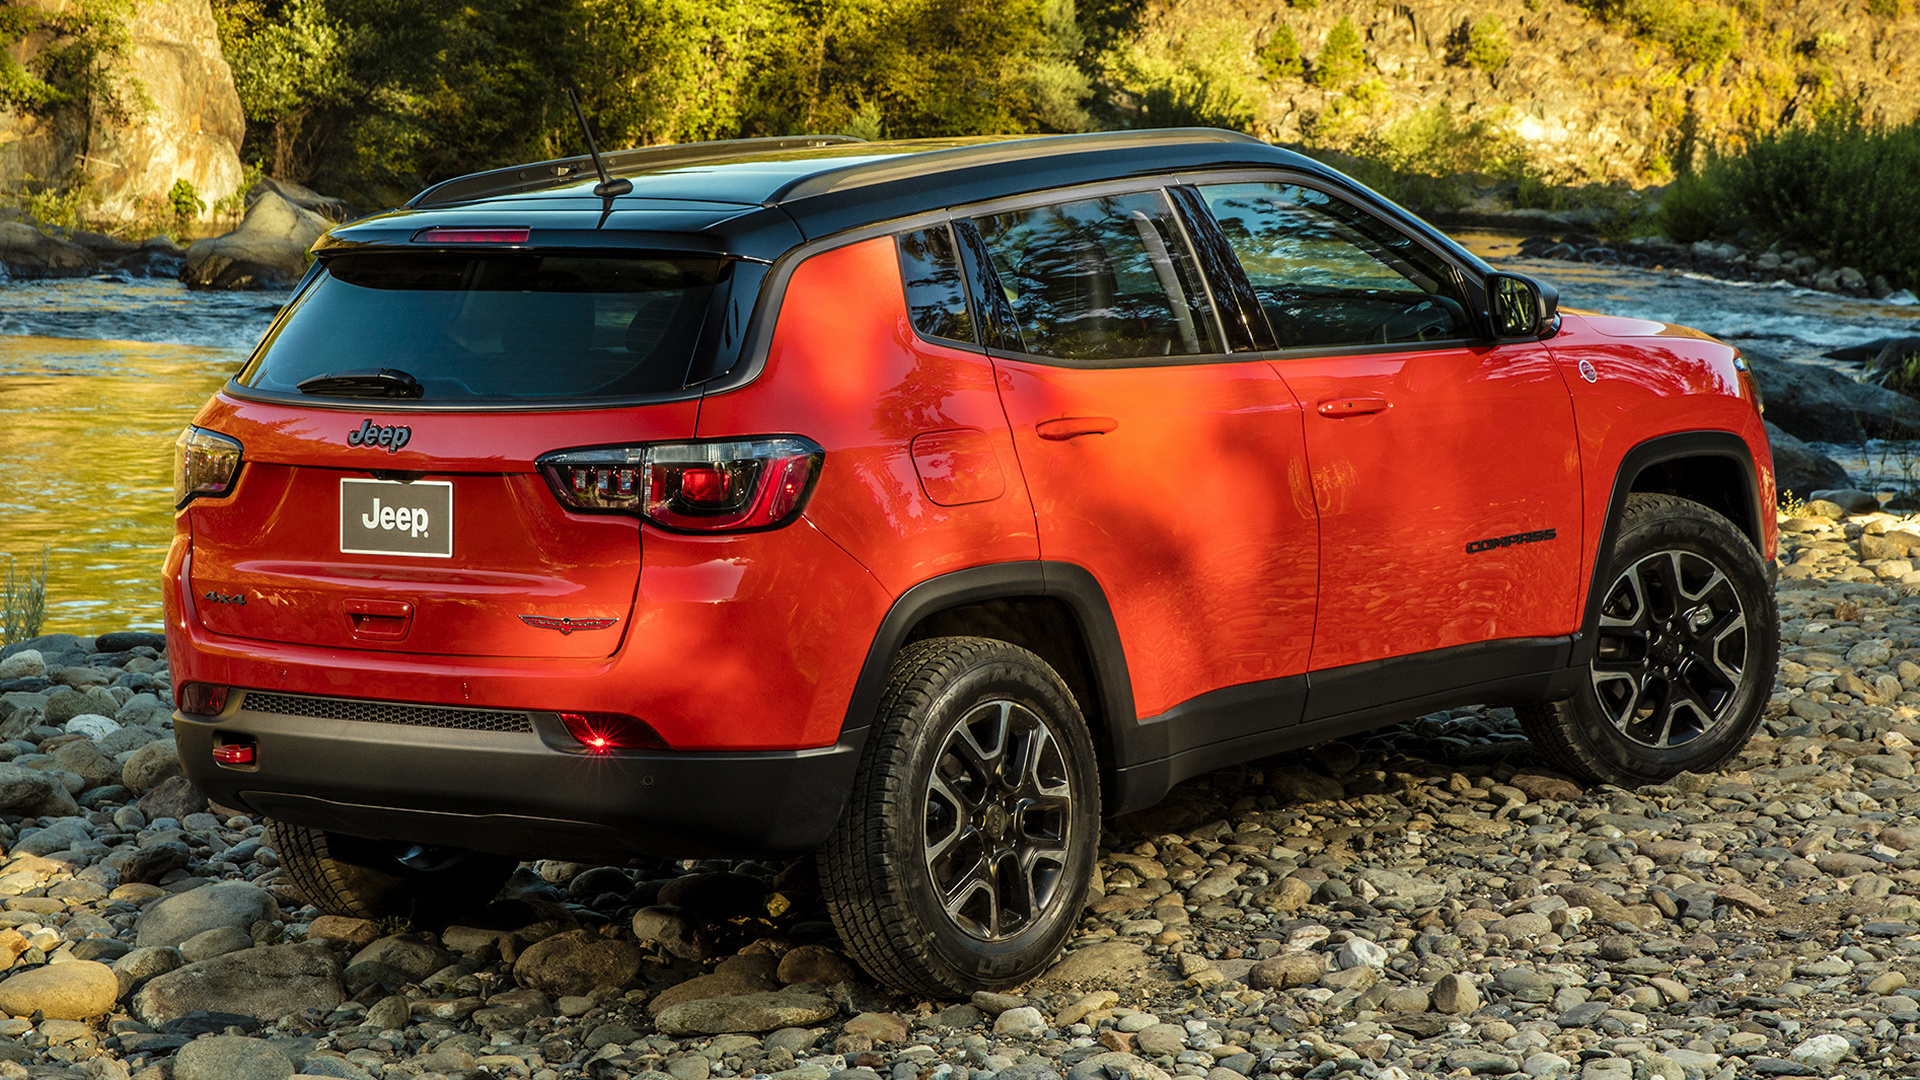 Jeep Compass Trailhawk (2017) Wallpapers And HD Images